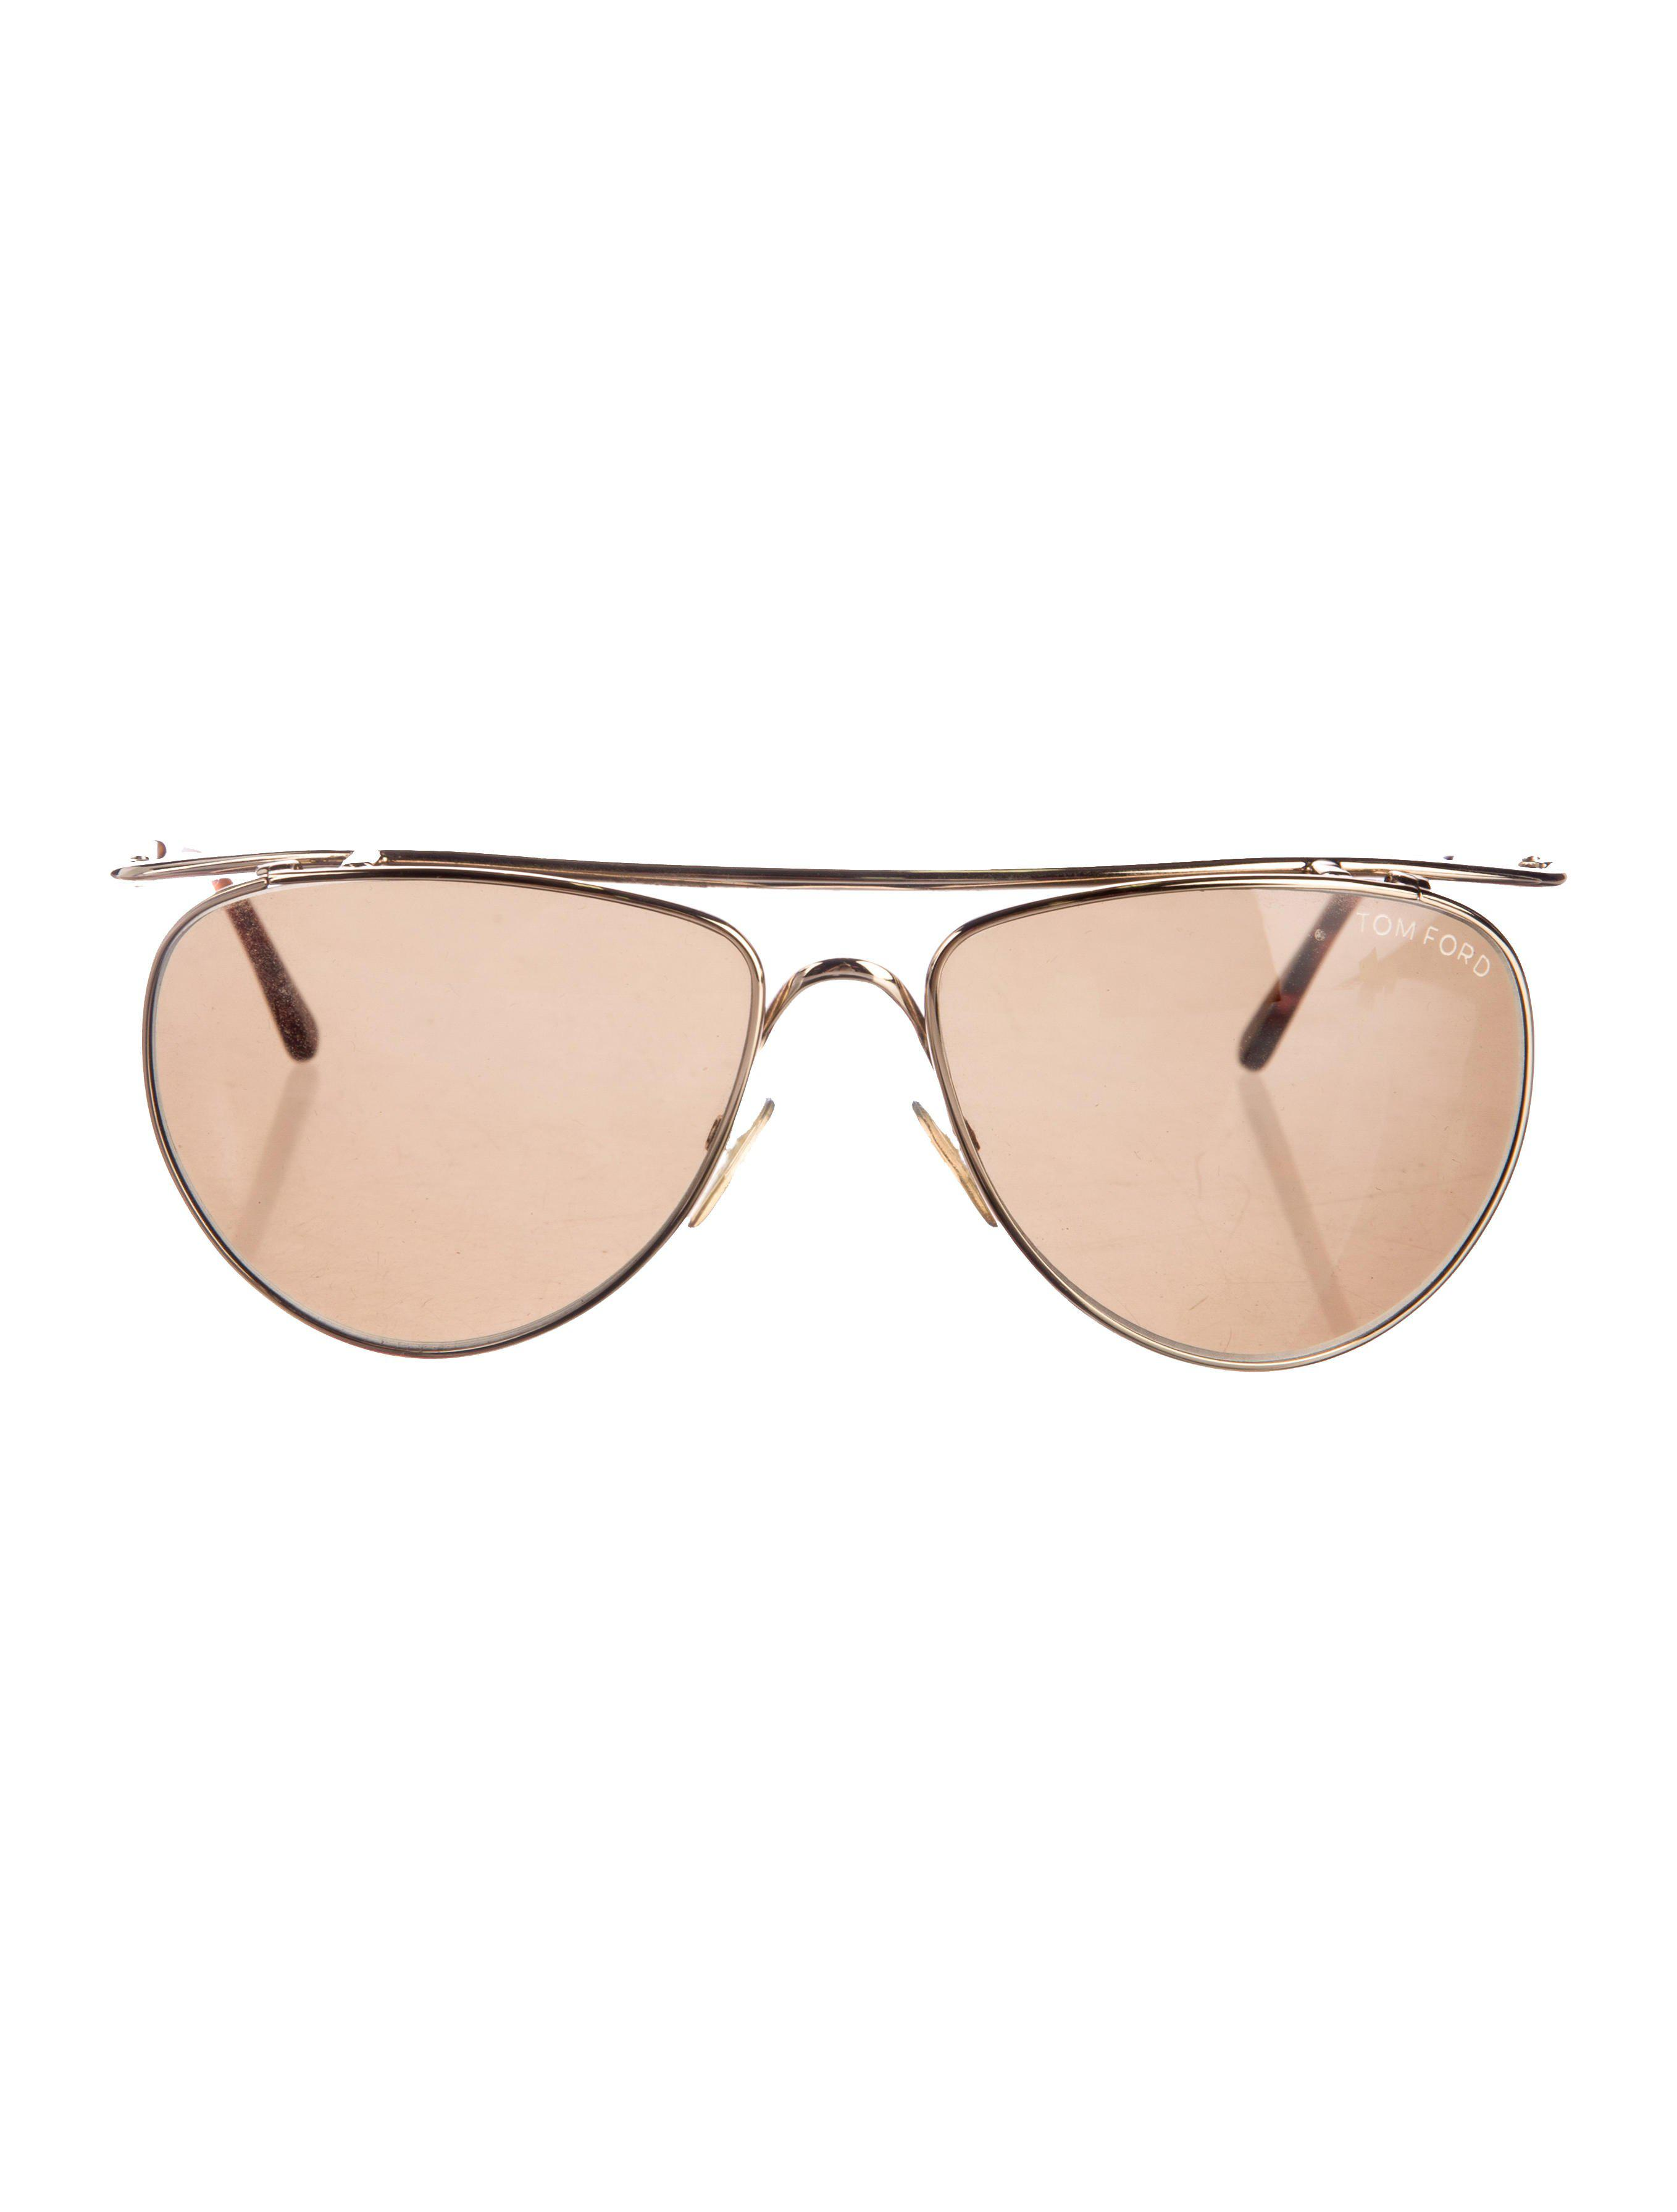 ce3aba9d10 Lyst - Tom Ford James Aviator Sunglasses Gold in Metallic